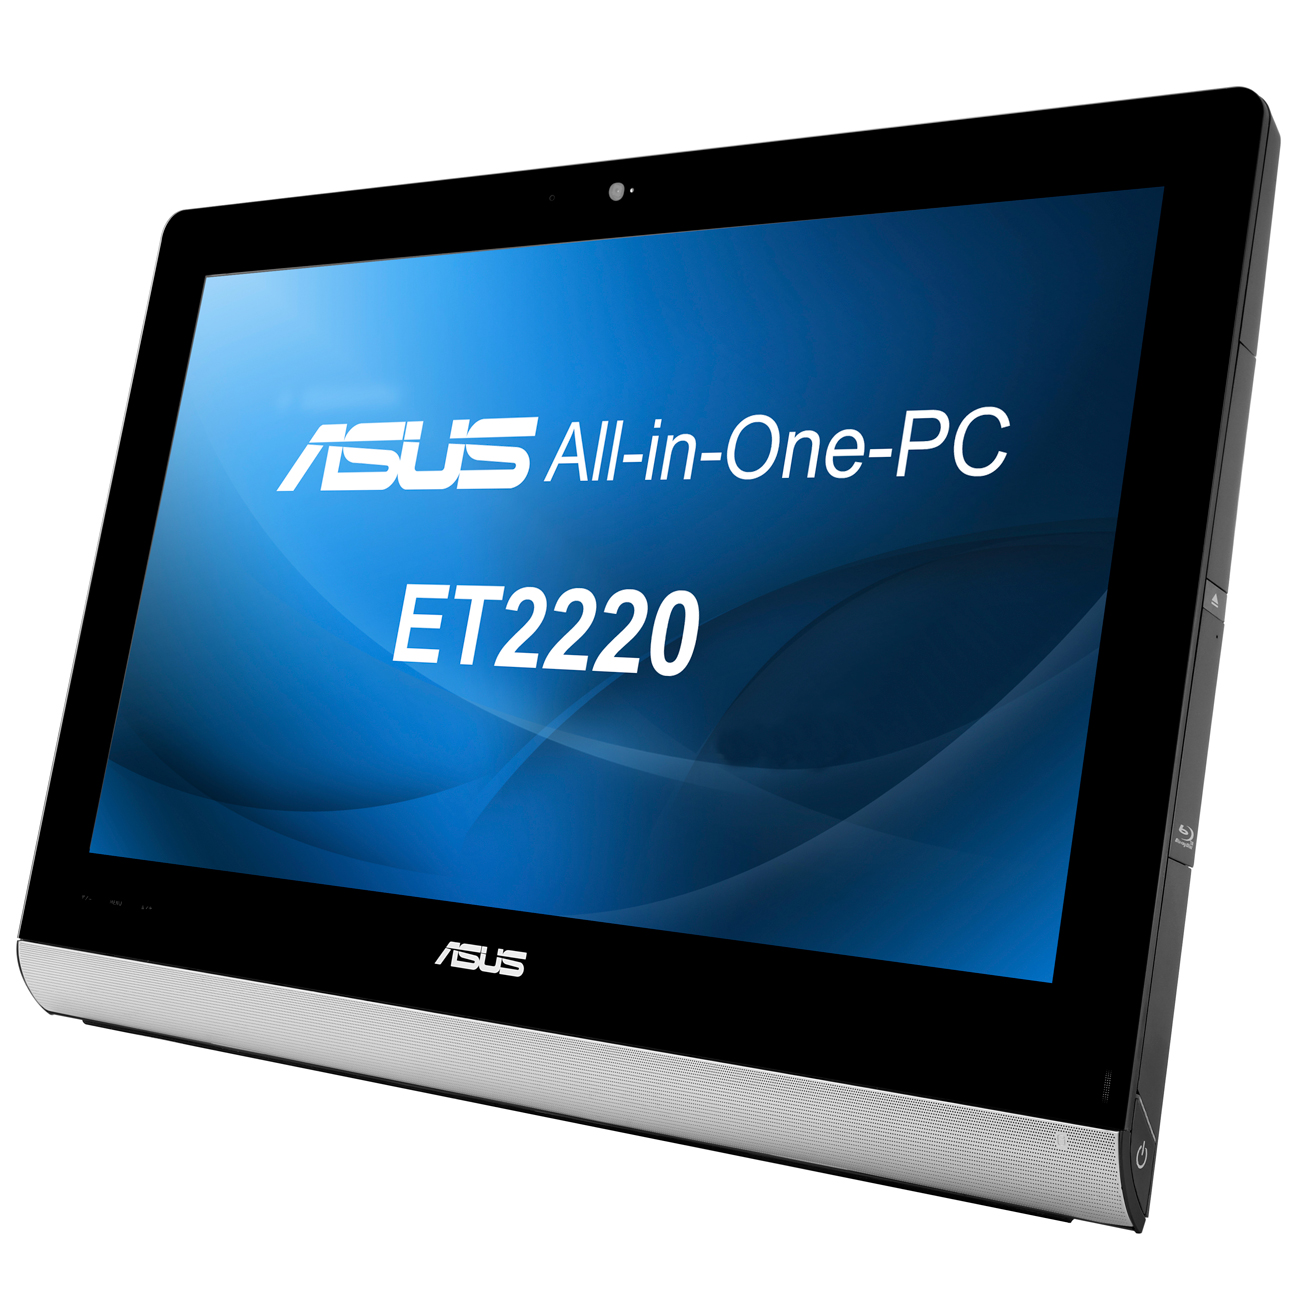 asus all in one pc et2220inti b012k pc de bureau asus sur ldlc. Black Bedroom Furniture Sets. Home Design Ideas